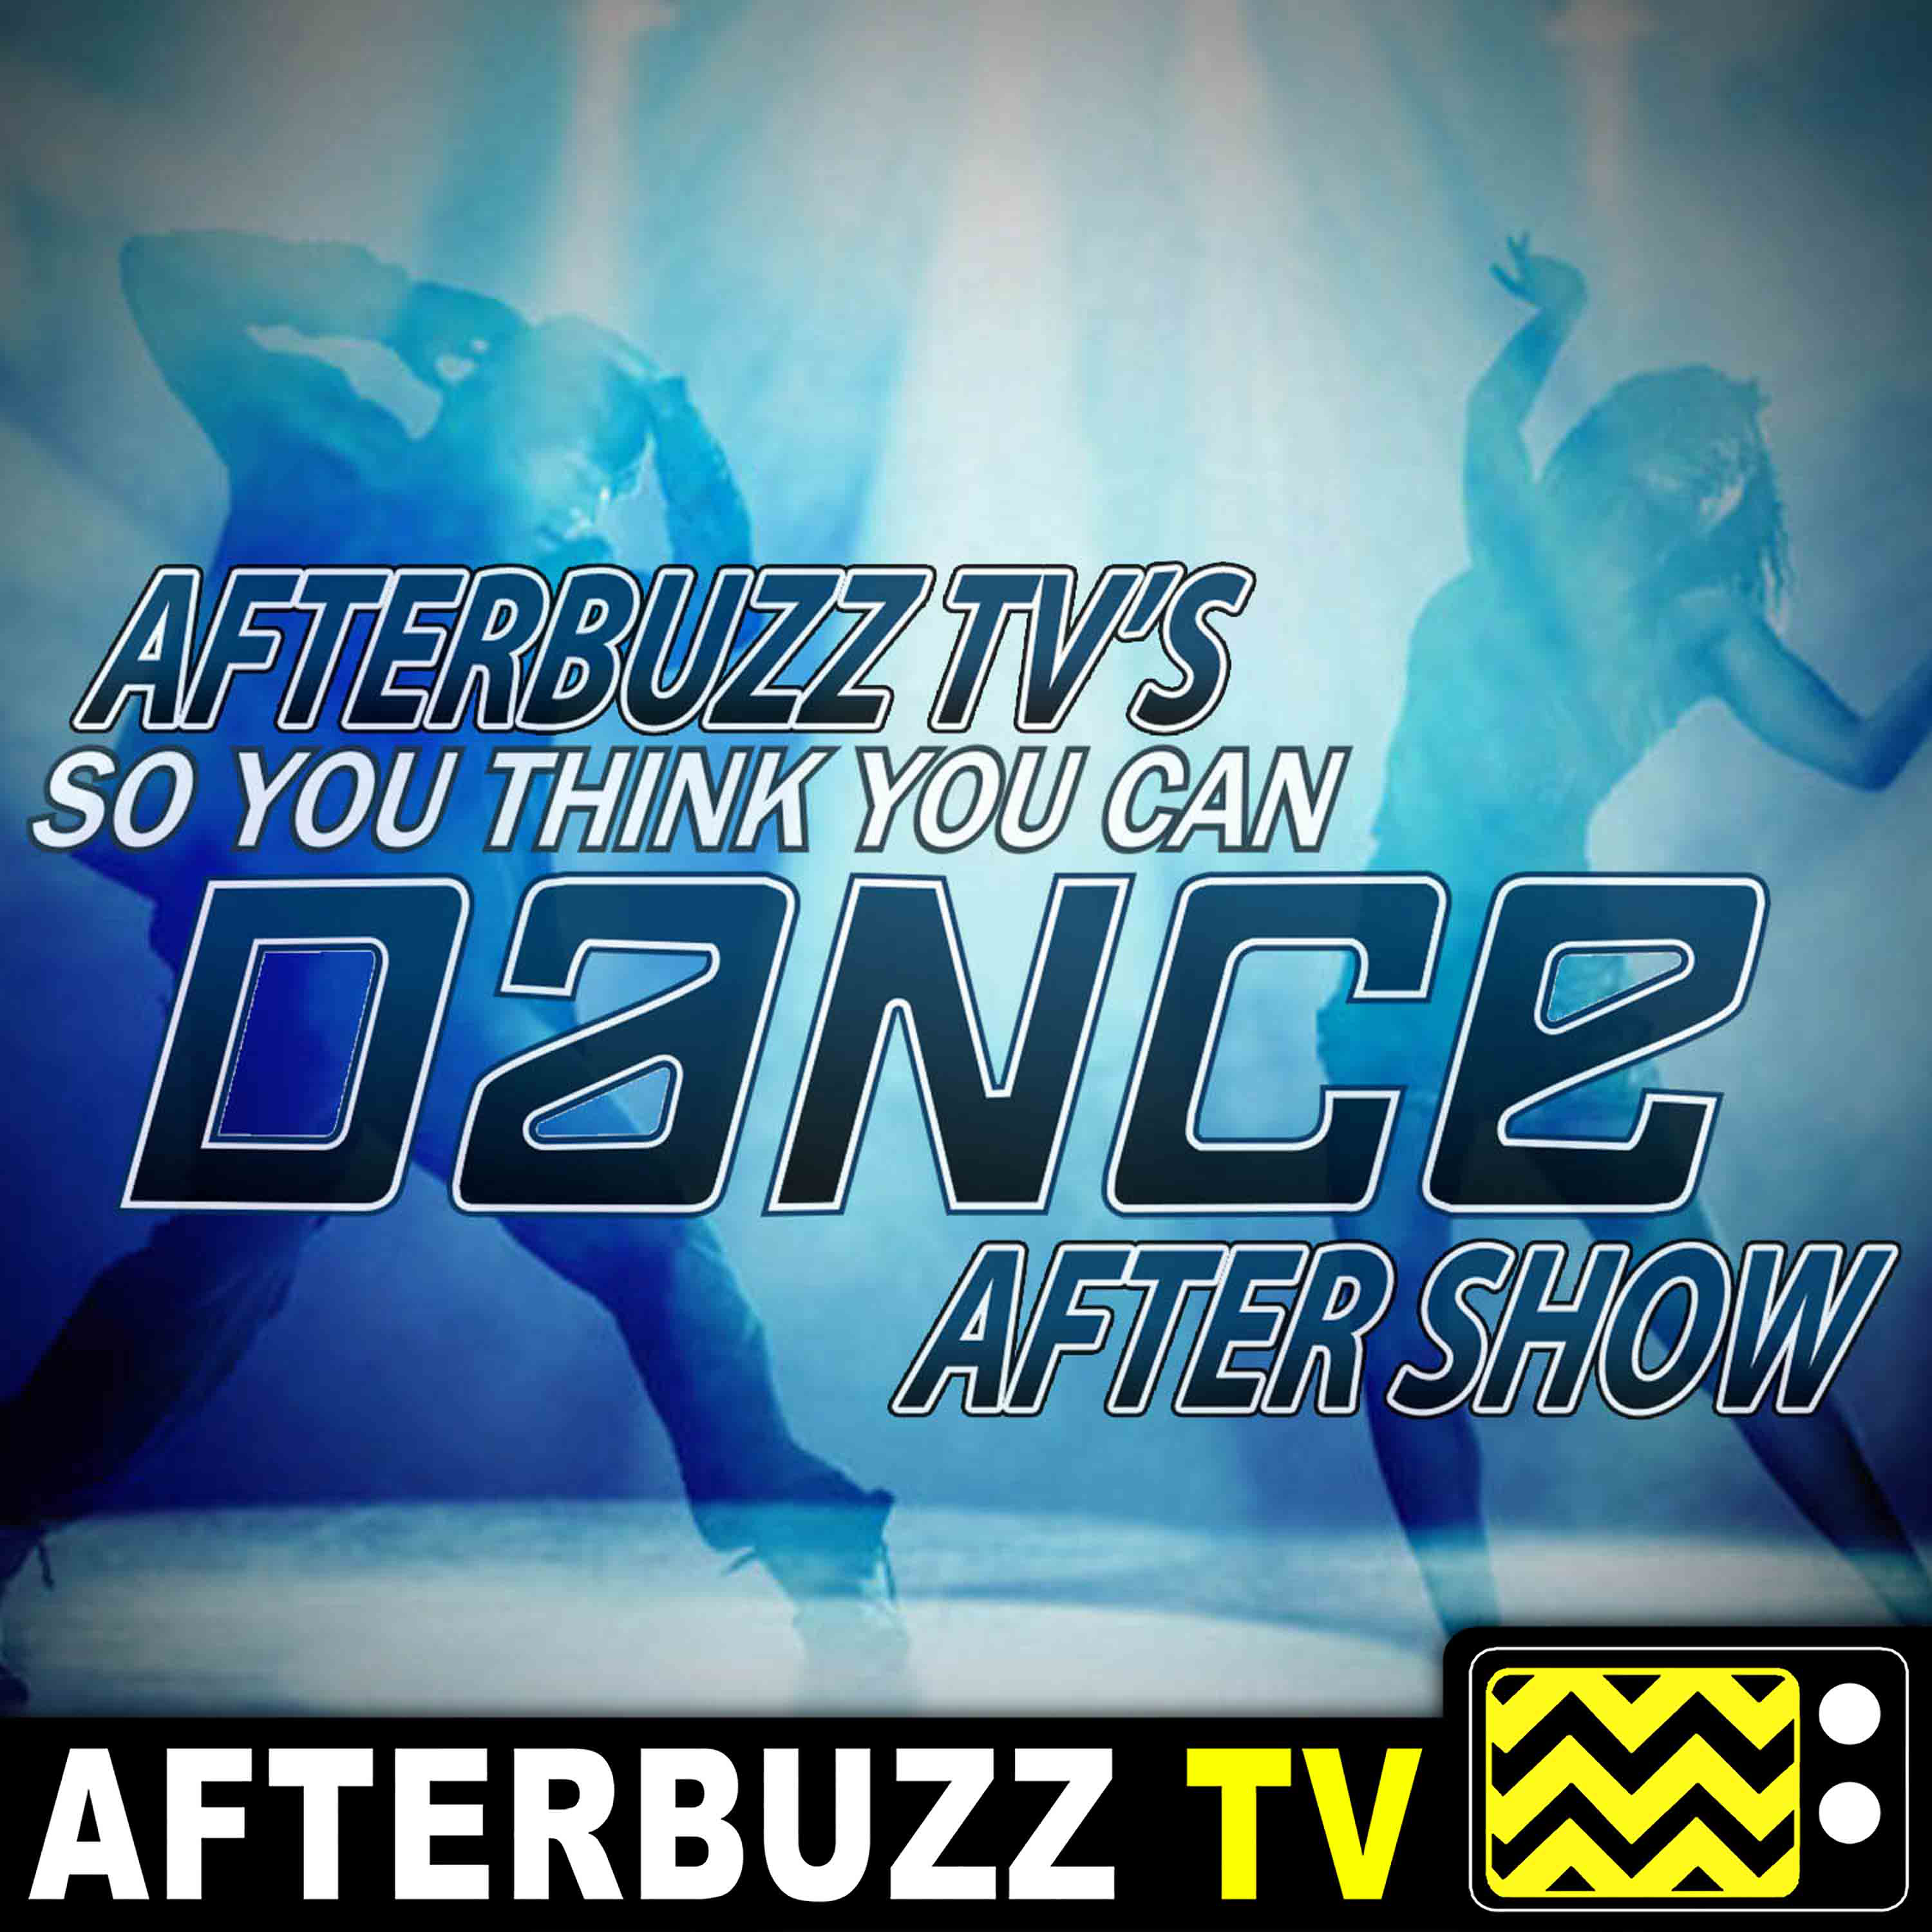 So You Think You Can Dance Reviews and After Show - AfterBuzz TV